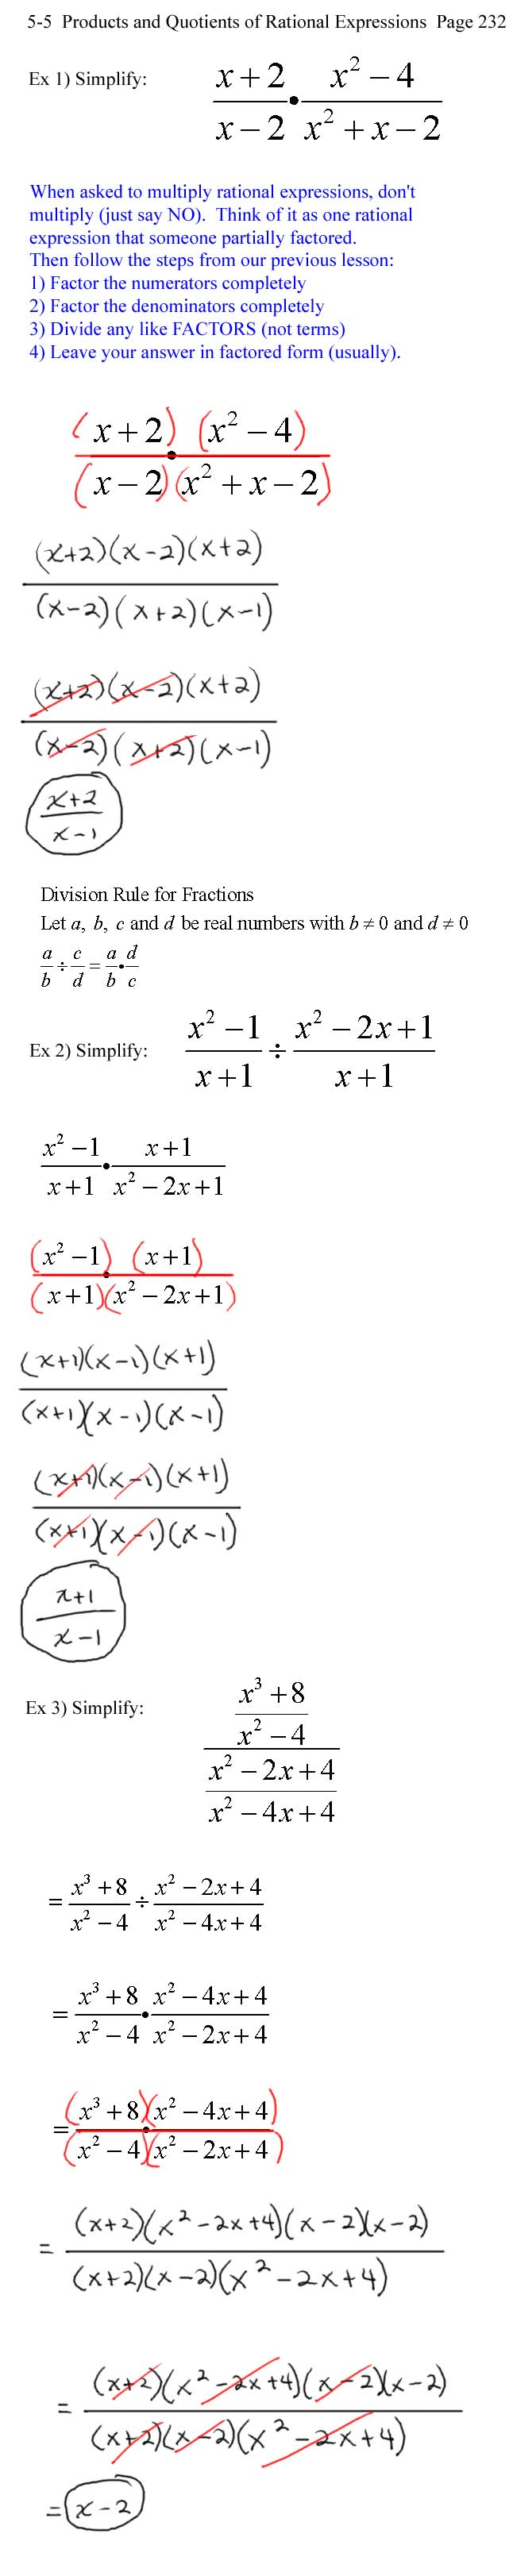 Algebra 2 dividing complex numbers worksheet